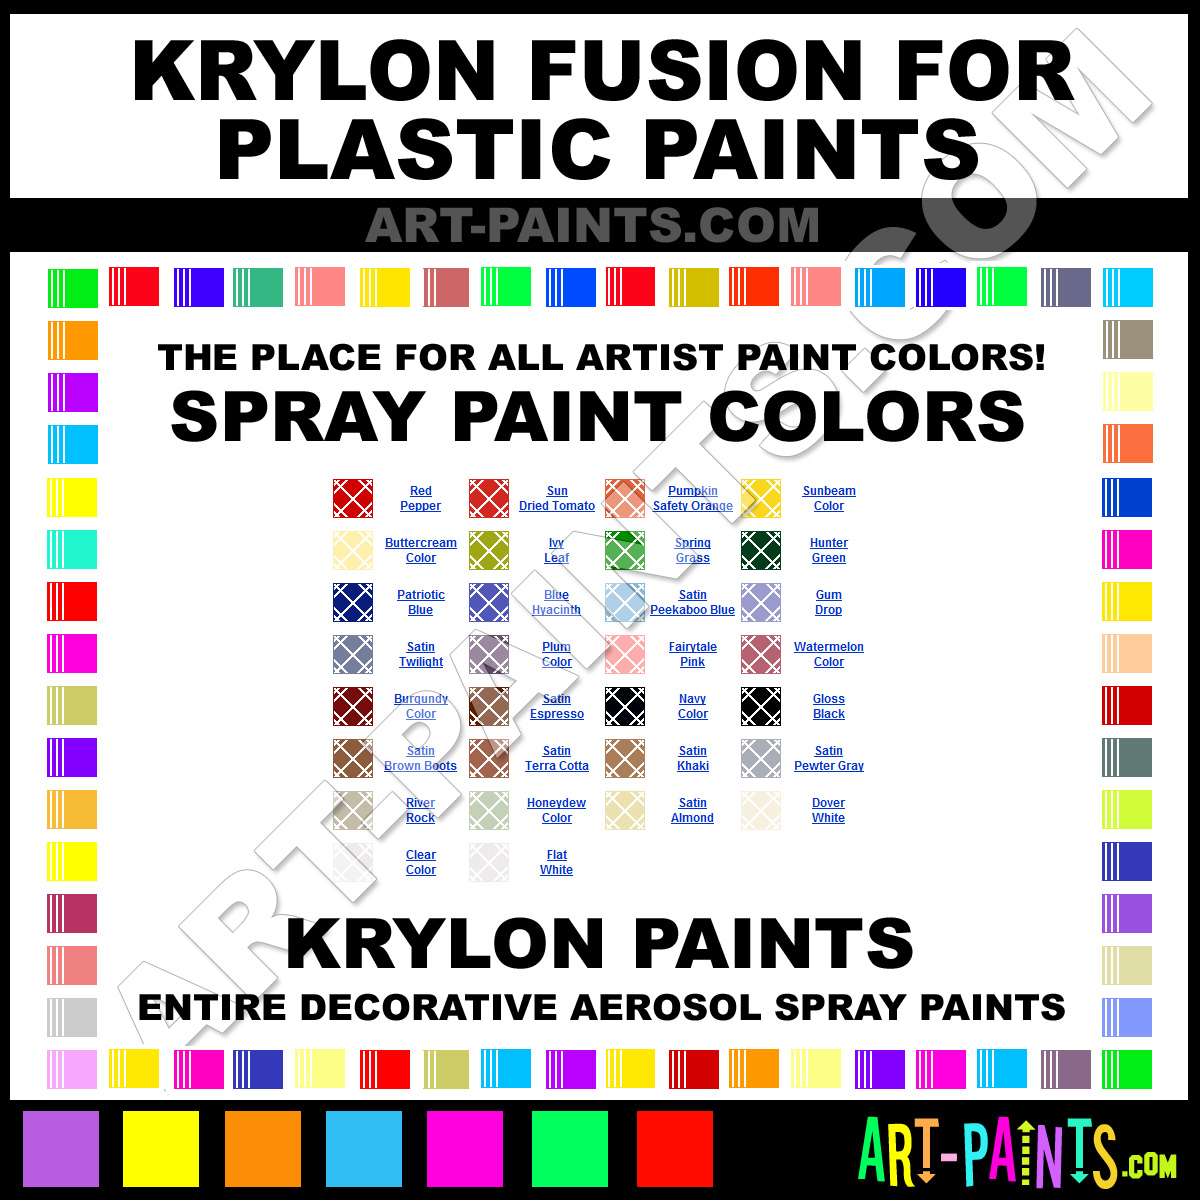 Fusion Paint Colors 28 Images Krylon Paint Color Chart Pictures To Pin On Krylon Fusion For